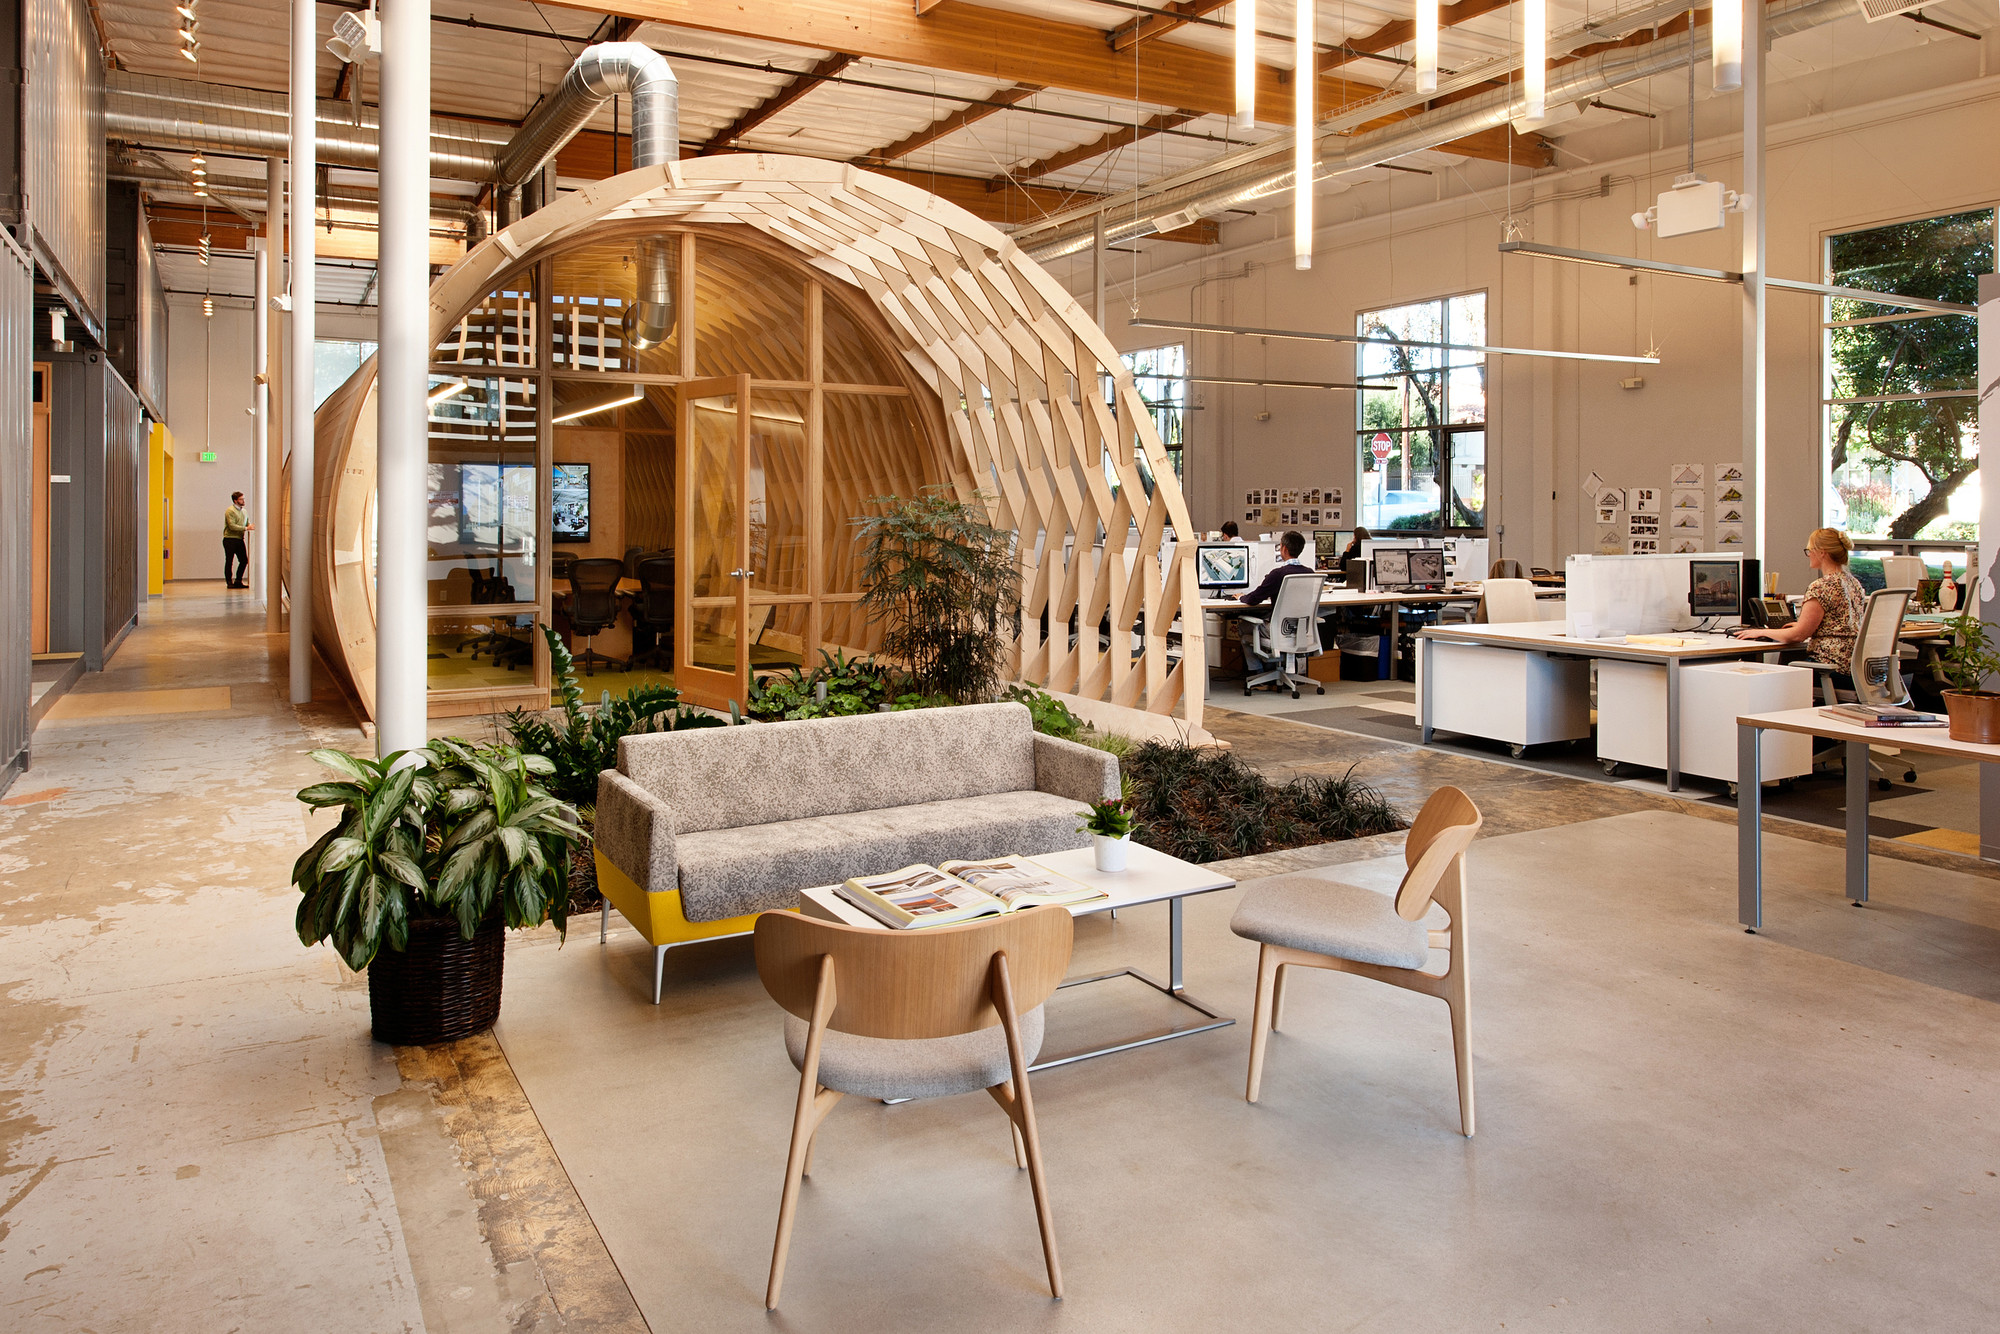 Hayden Place / Cuningham Group